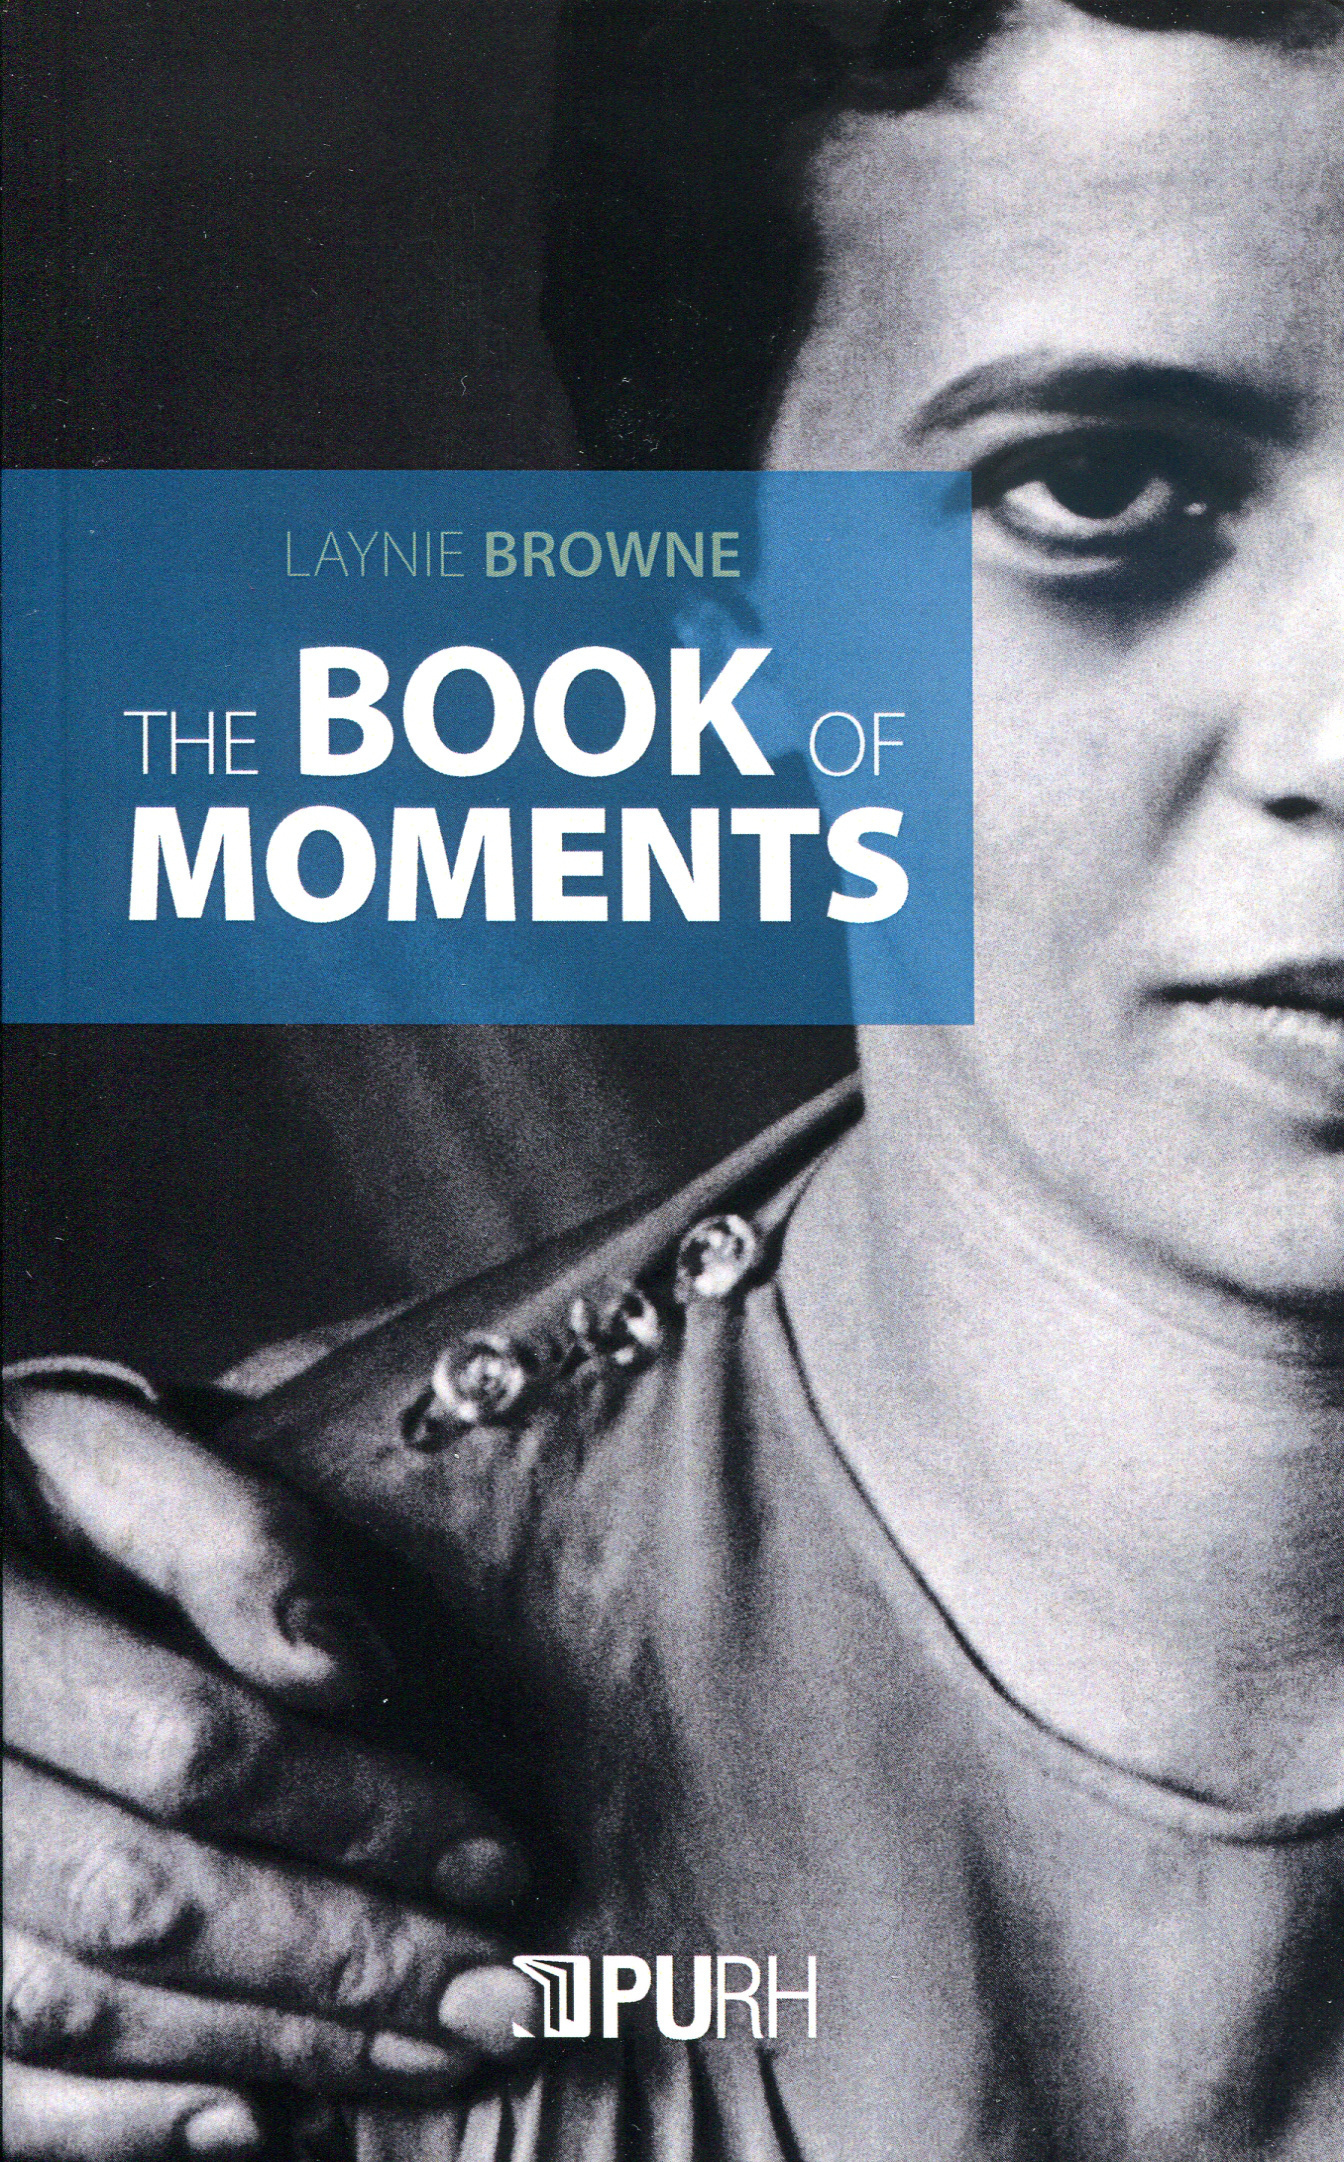 THE BOOK OF MOMENTS